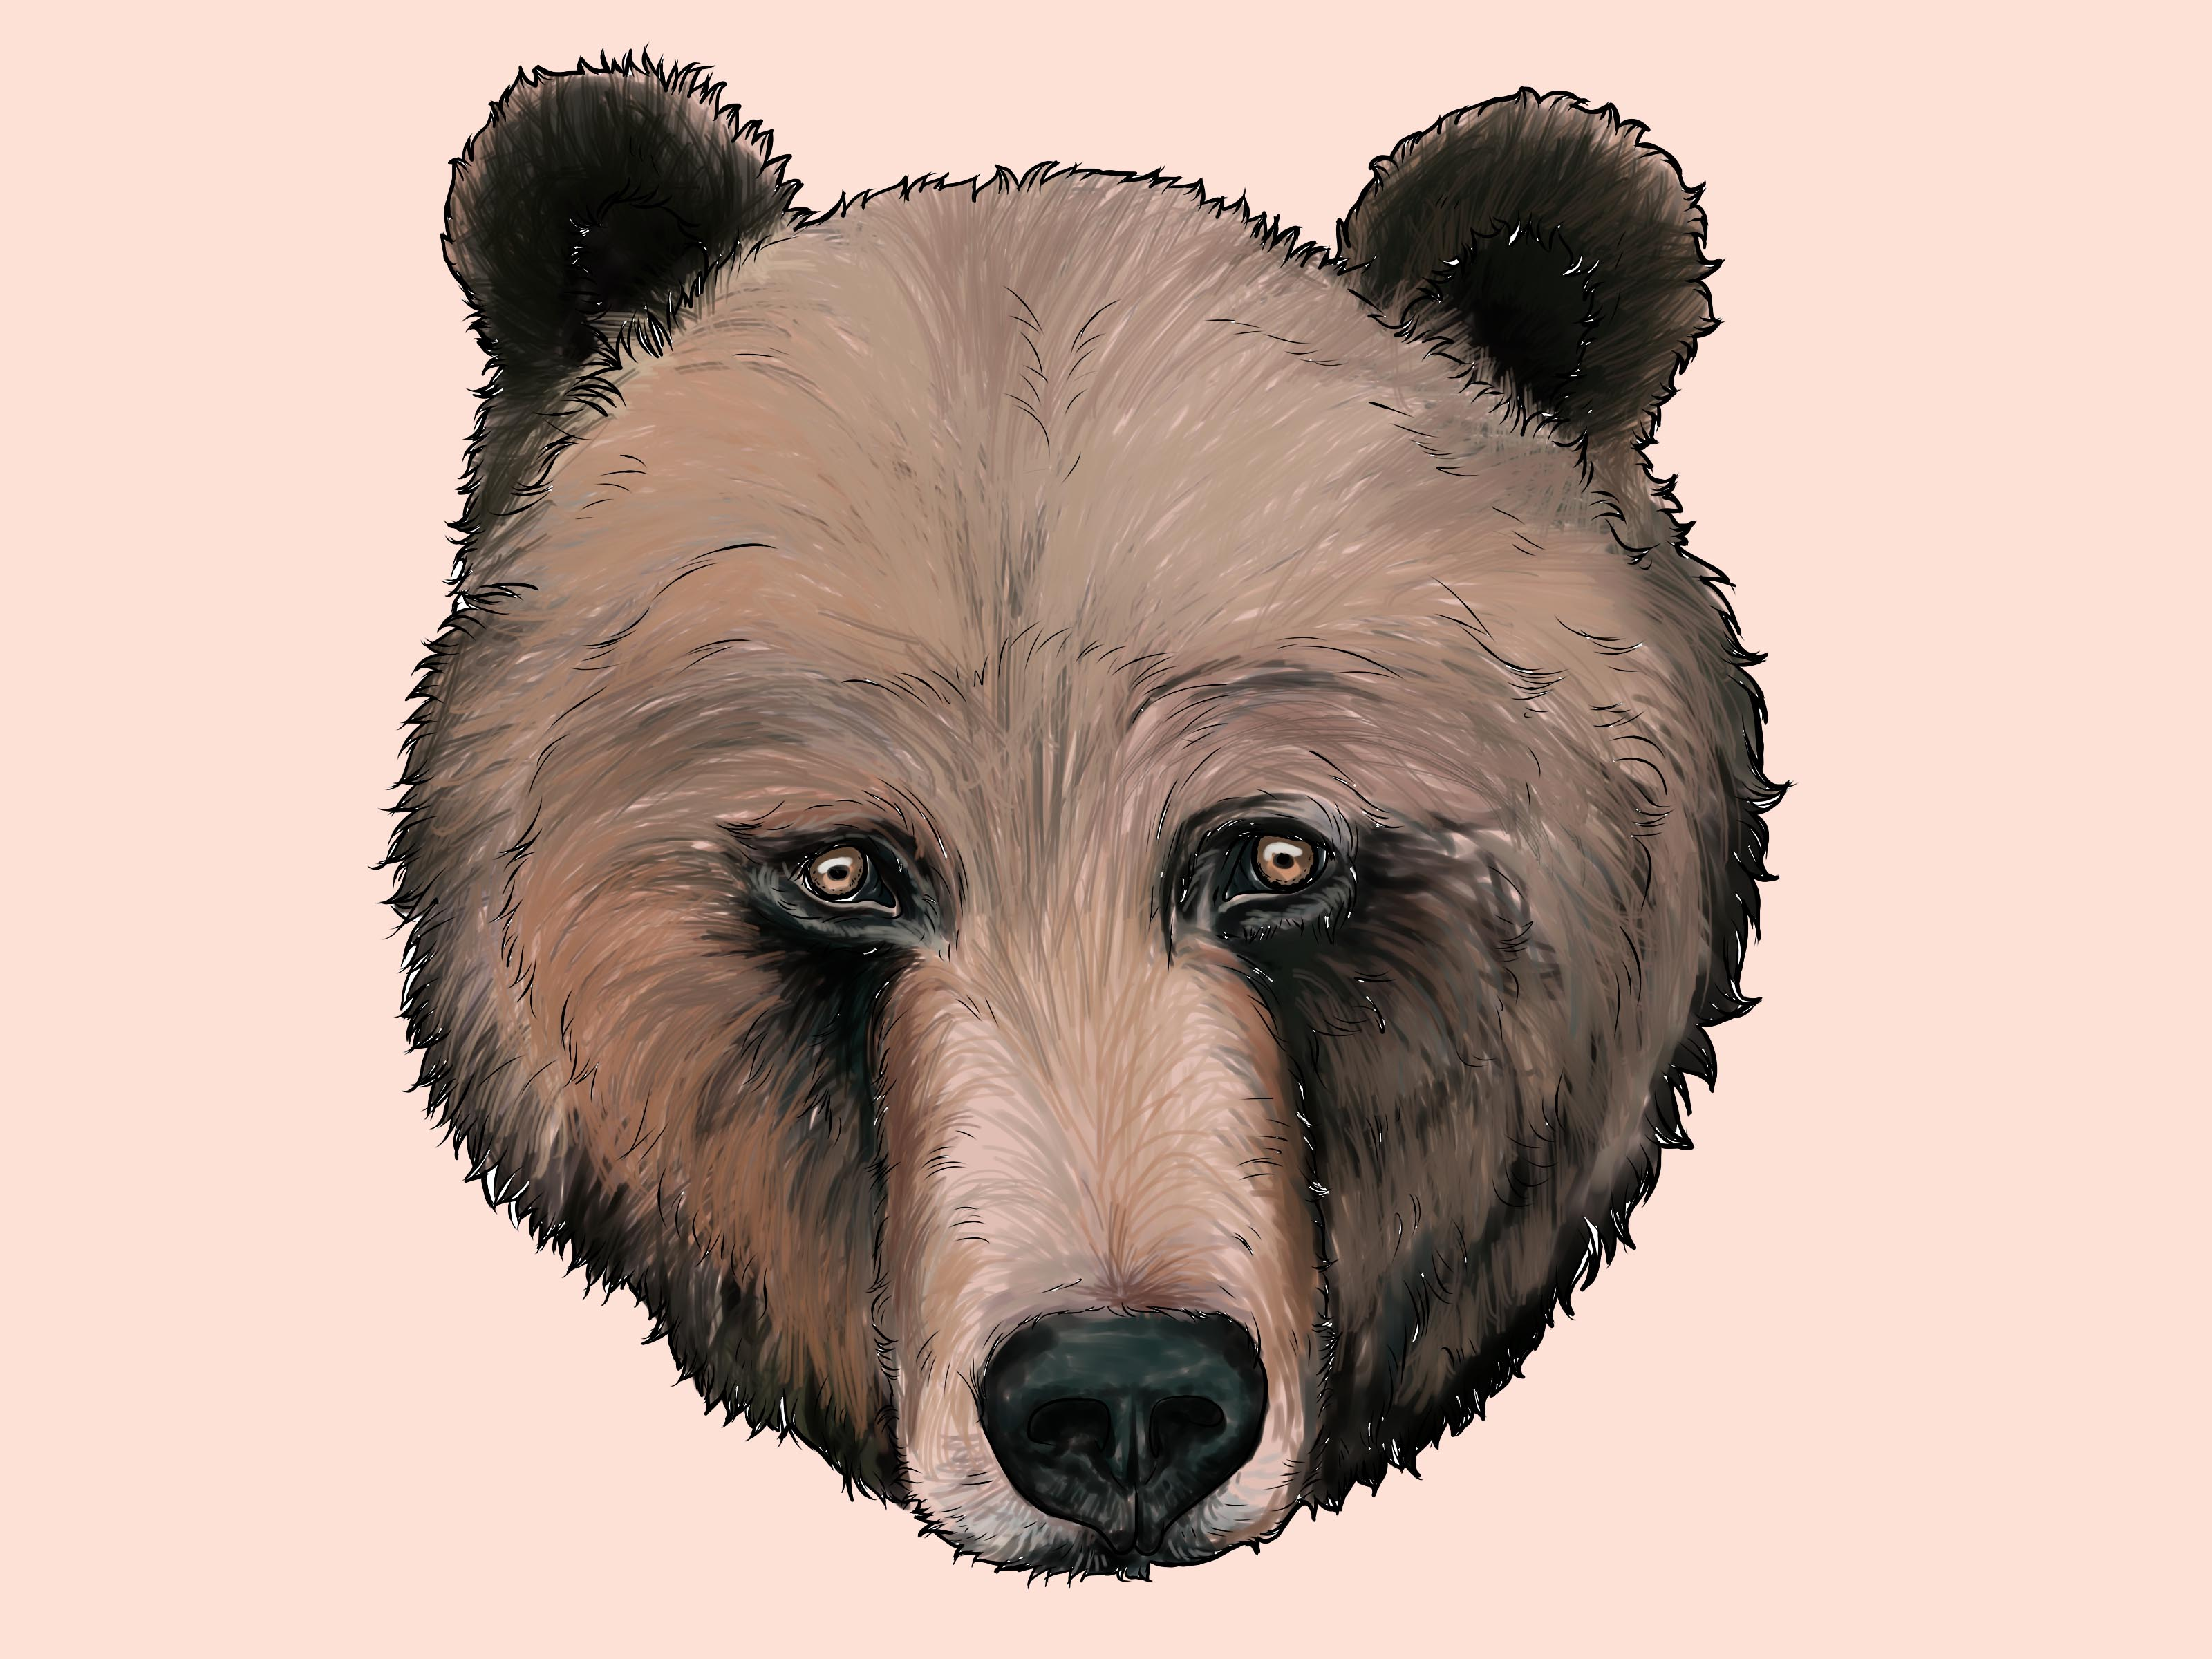 3200x2400 How To Draw A Grizzly Bear (With Pictures)